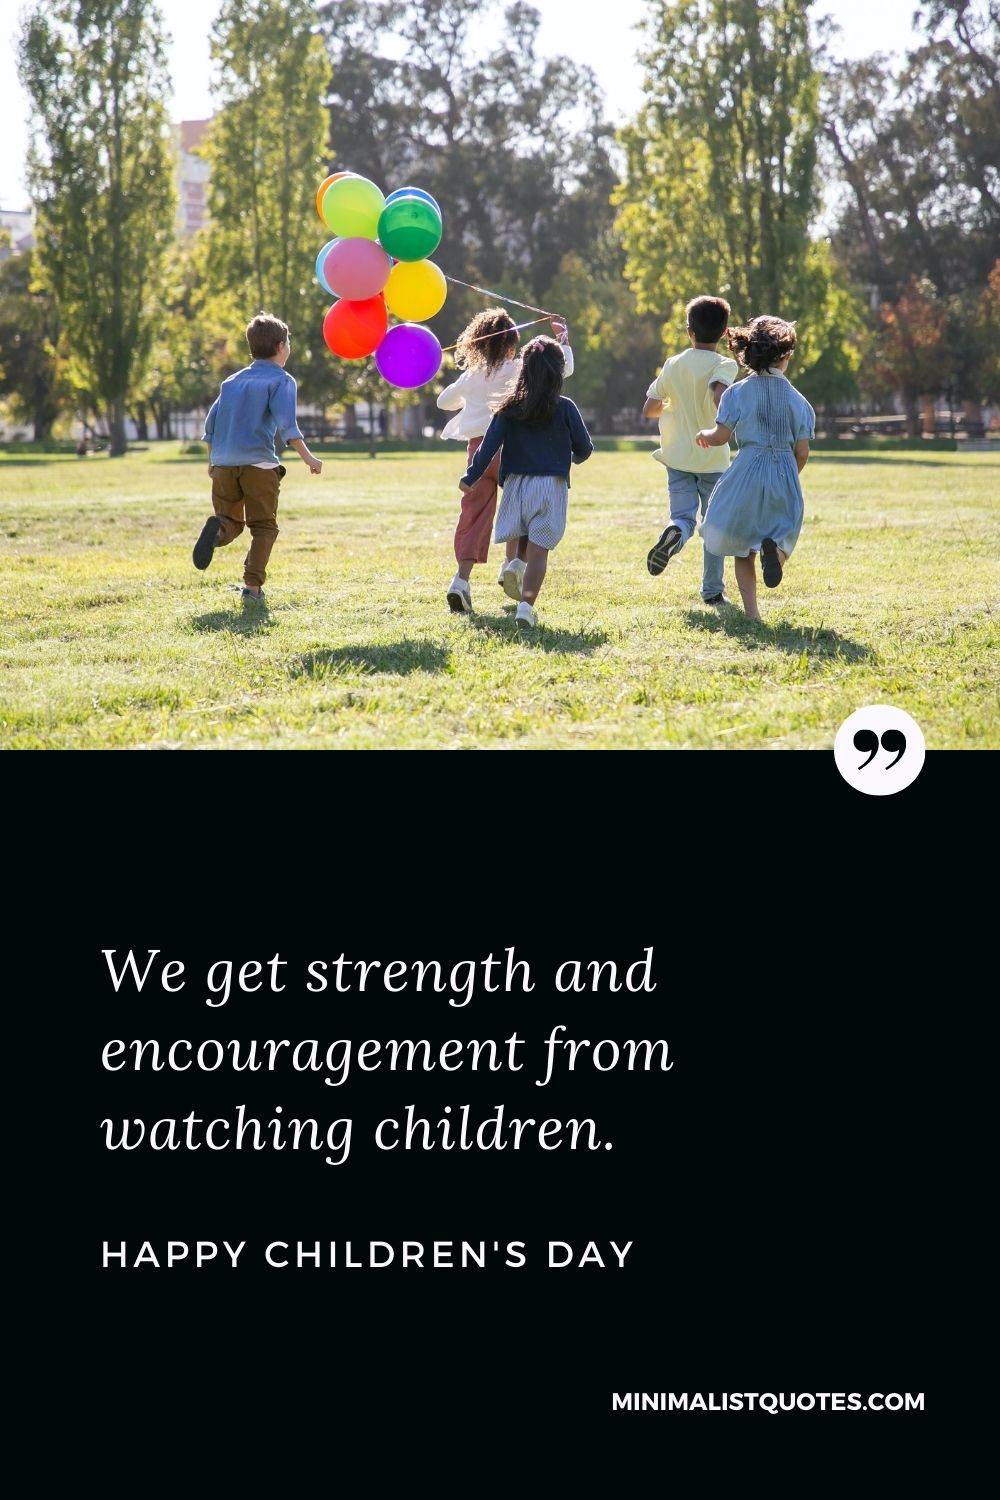 Children's Day Wish & Message with HD Image: We get strength and encouragement from watching children. Happy Children's Day!